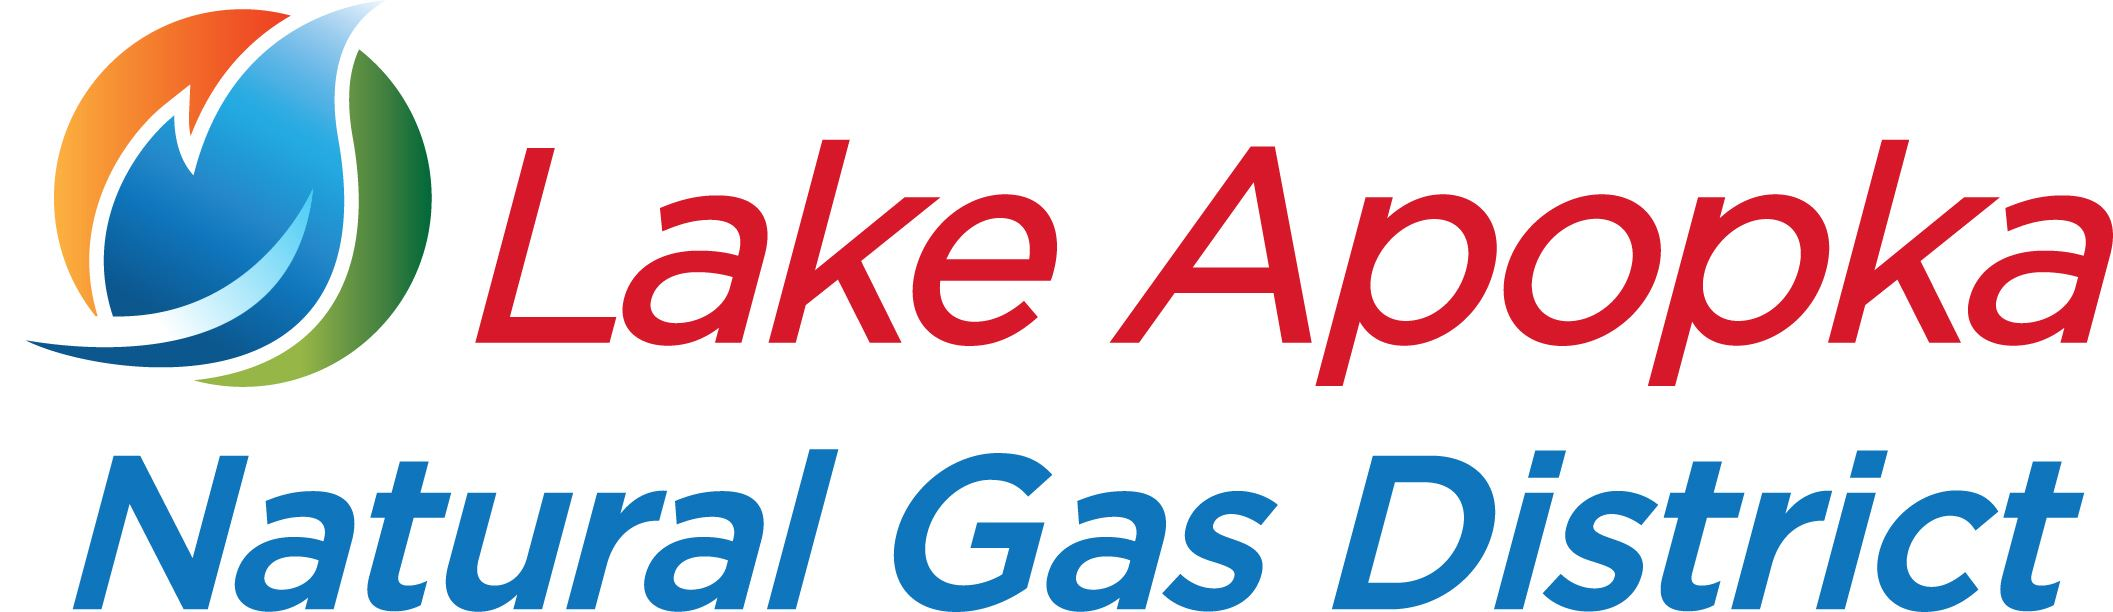 Lake Apopka Natural Gas District